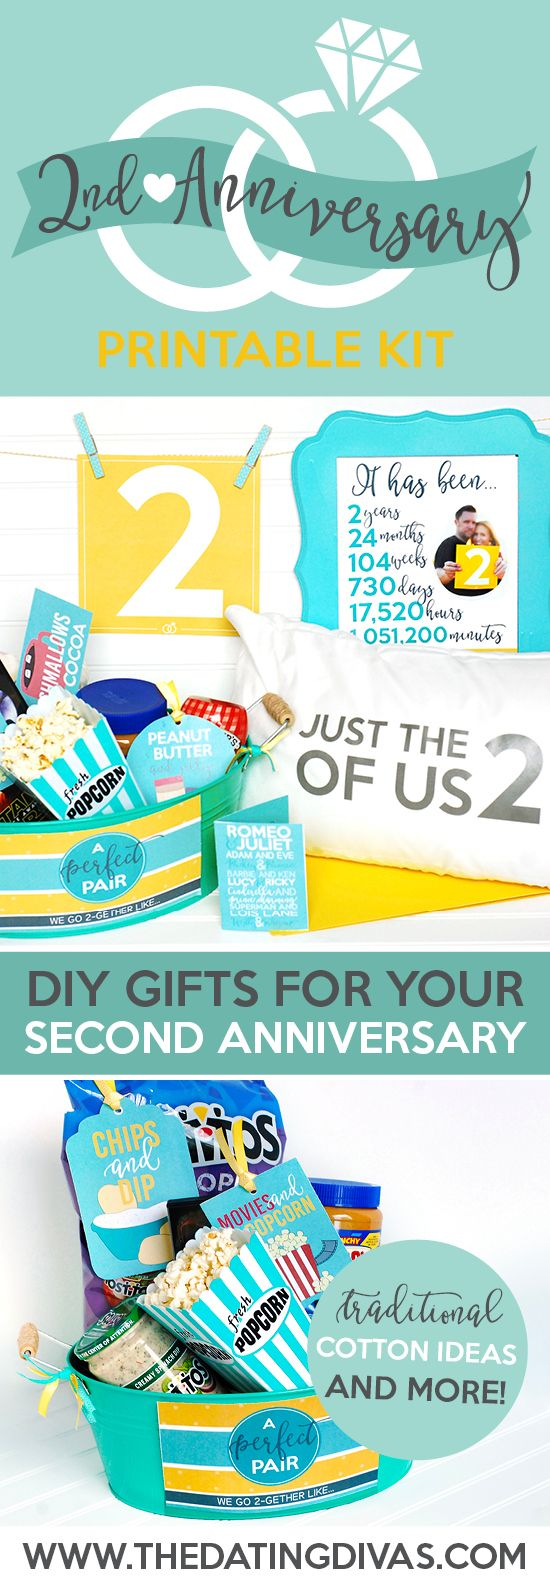 Second Anniversary Gift Printable Kit Anniversary gifts